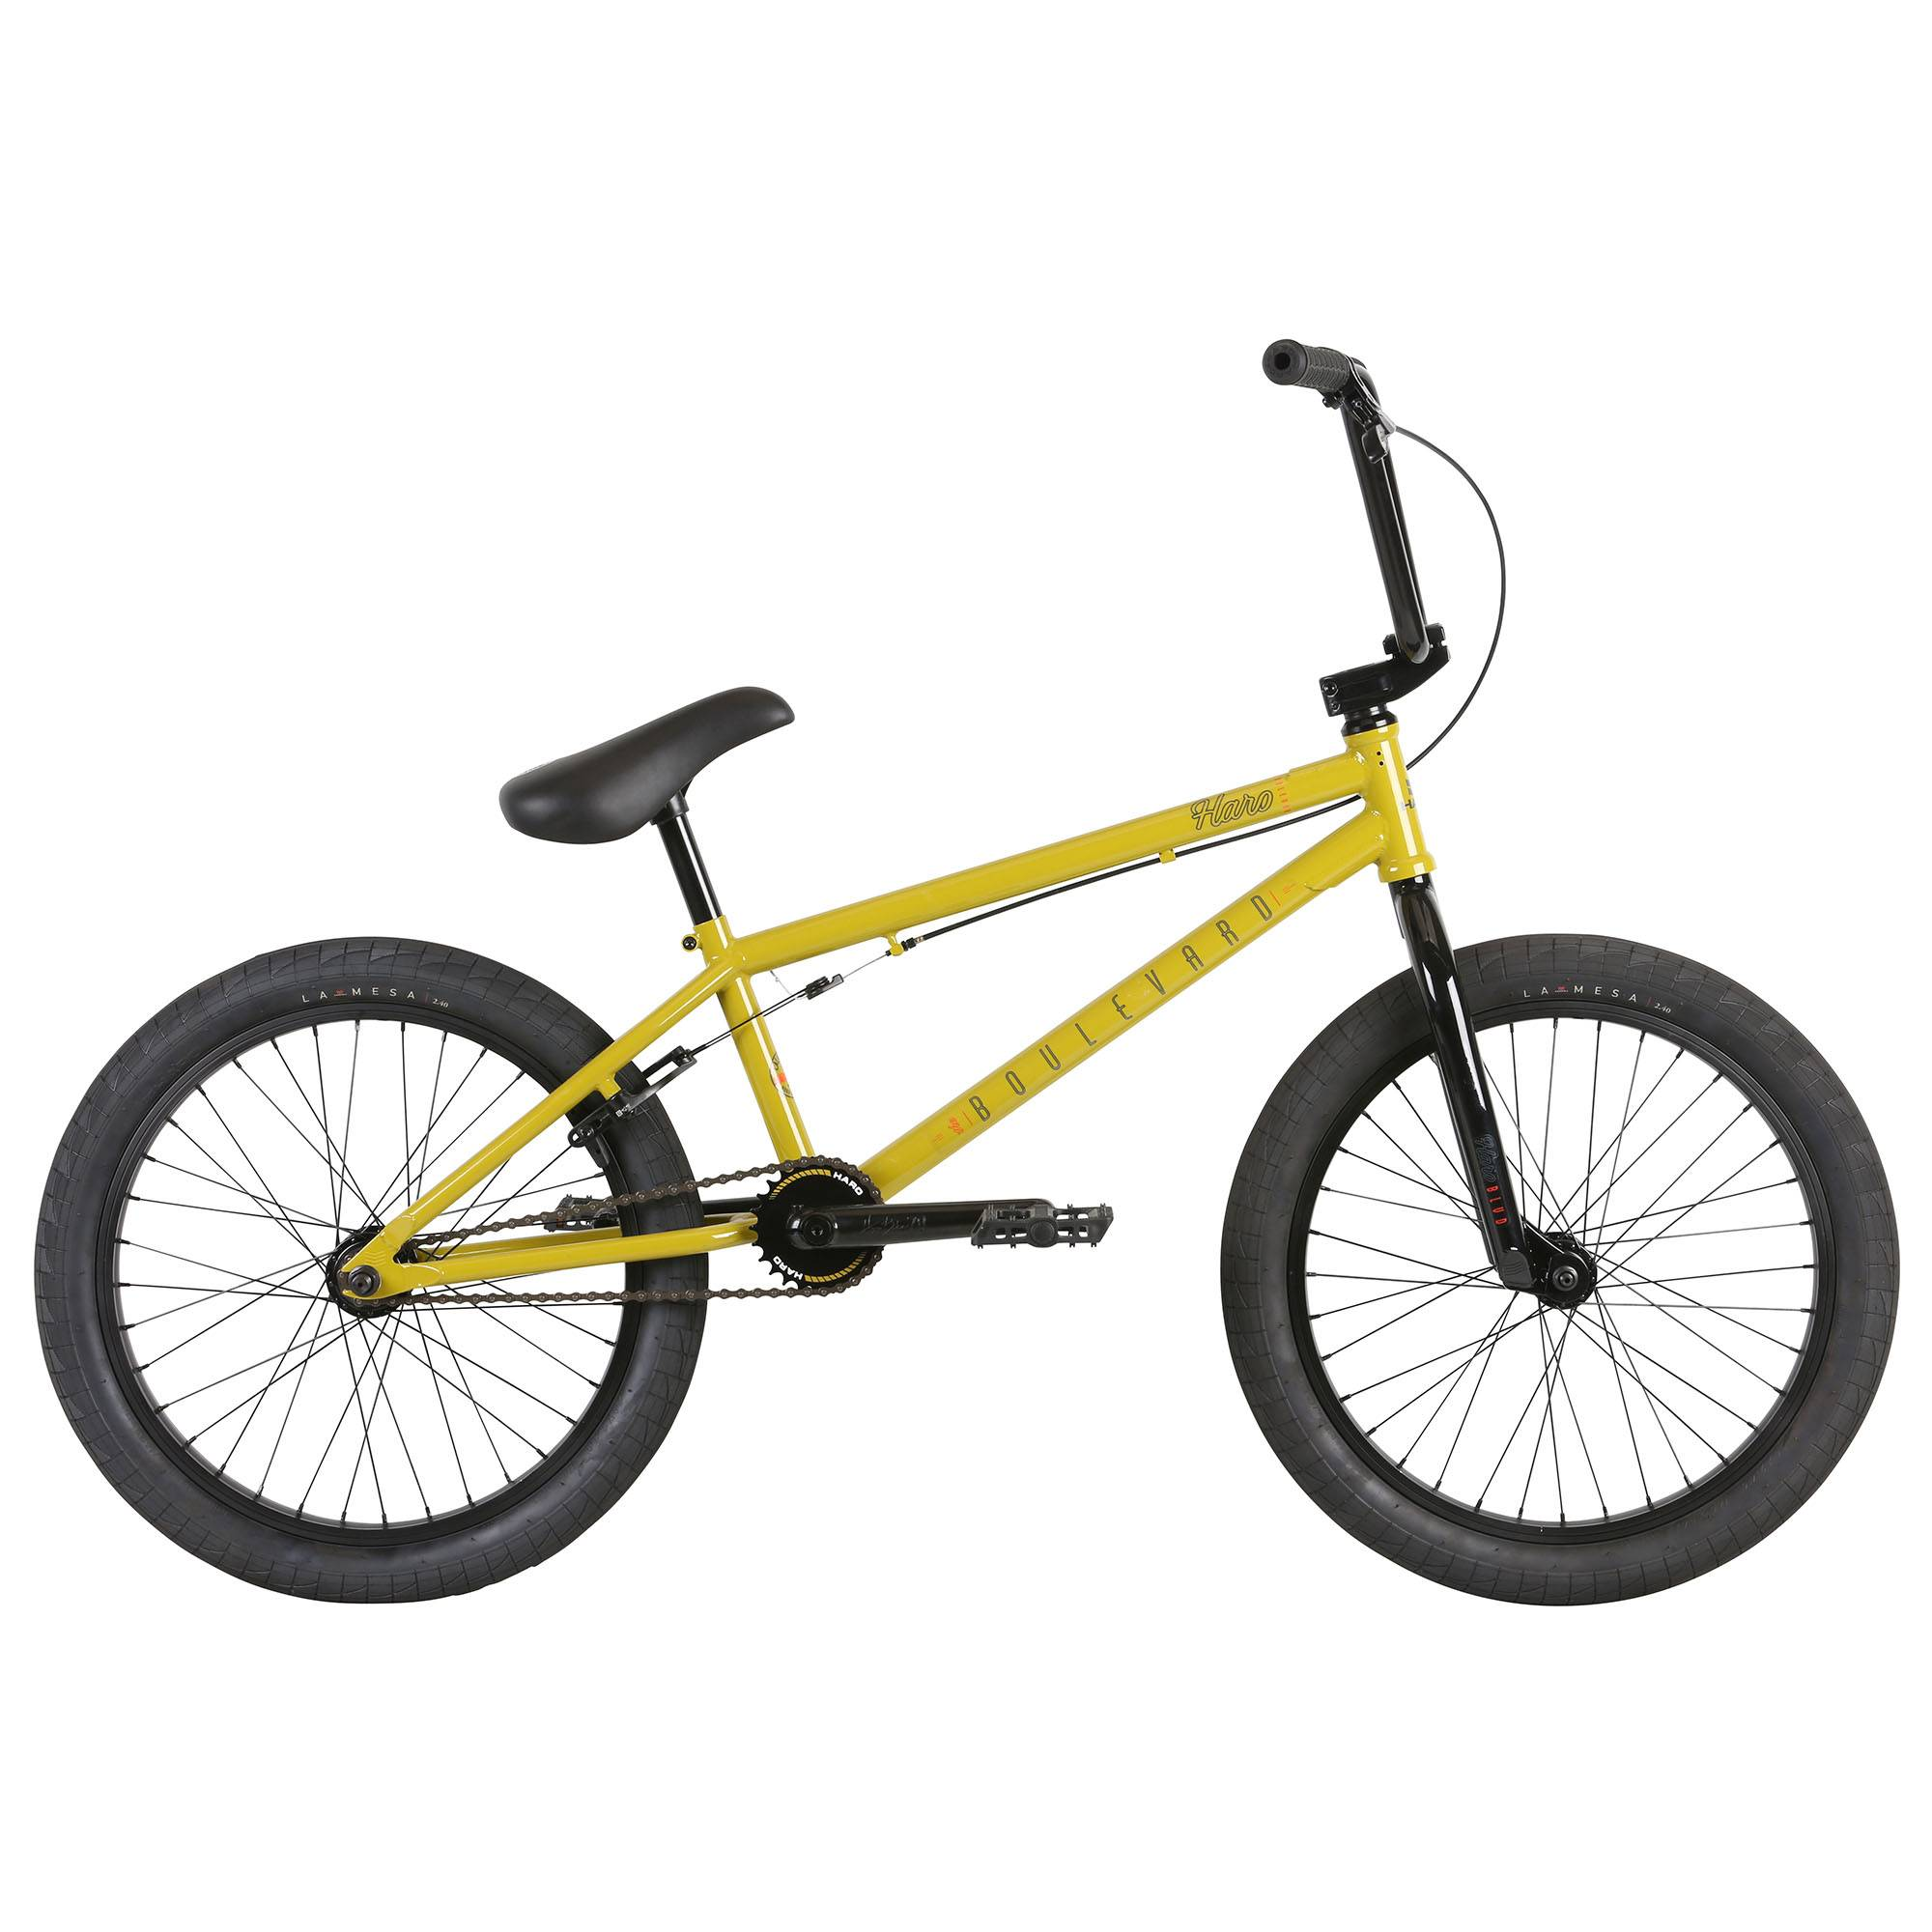 Haro Boulevard 20.75 BMX Bike '21  - Honey Mustard - Size: 20.75